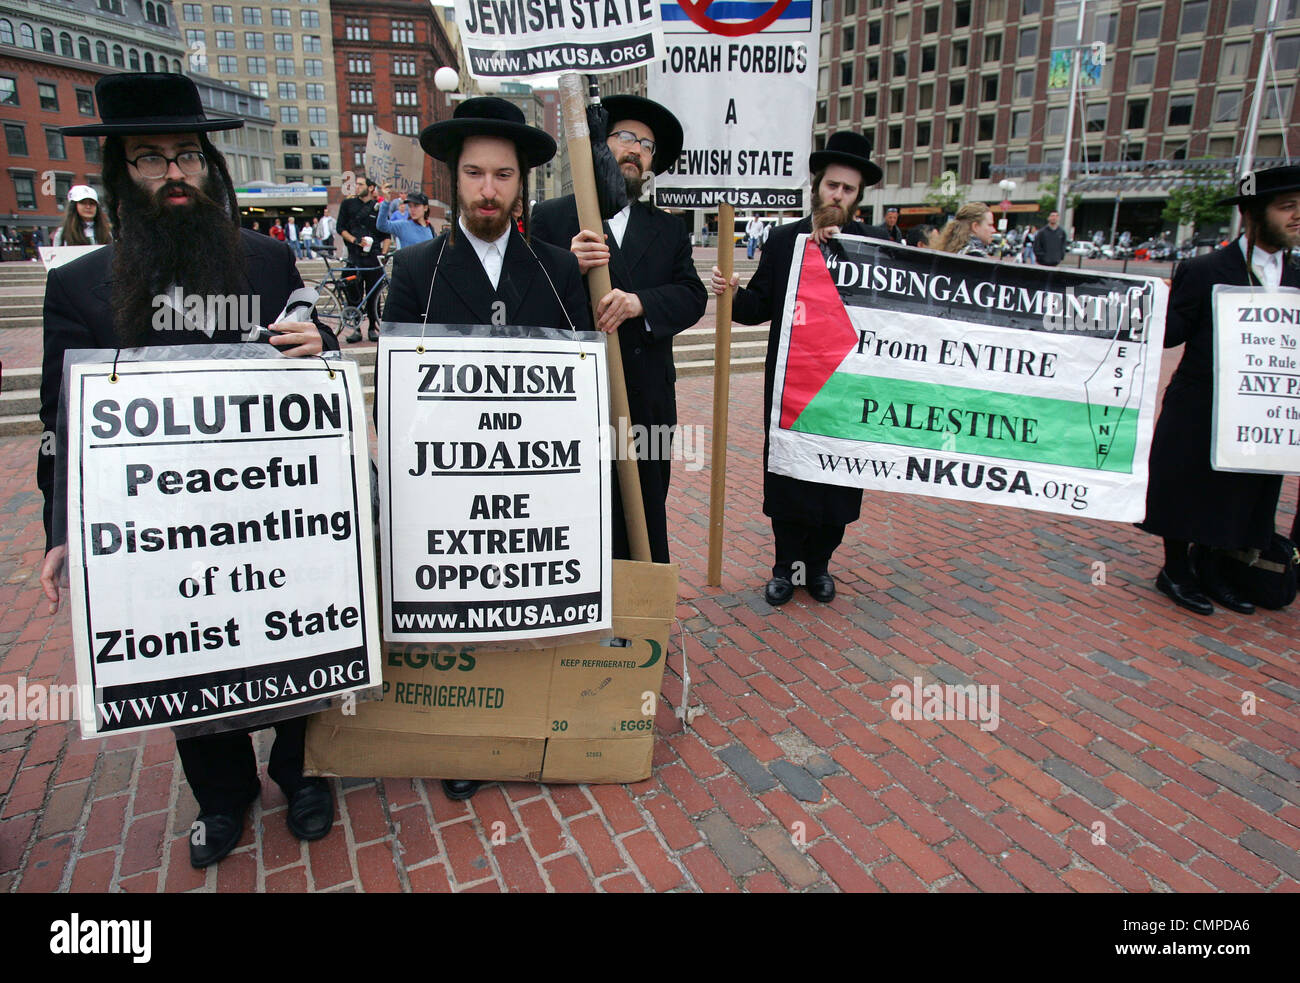 Ultra-Orthodox Jews protest on City Hall Plaza in Boston on the anniversary of the founding of the Jewish state. Stock Photo